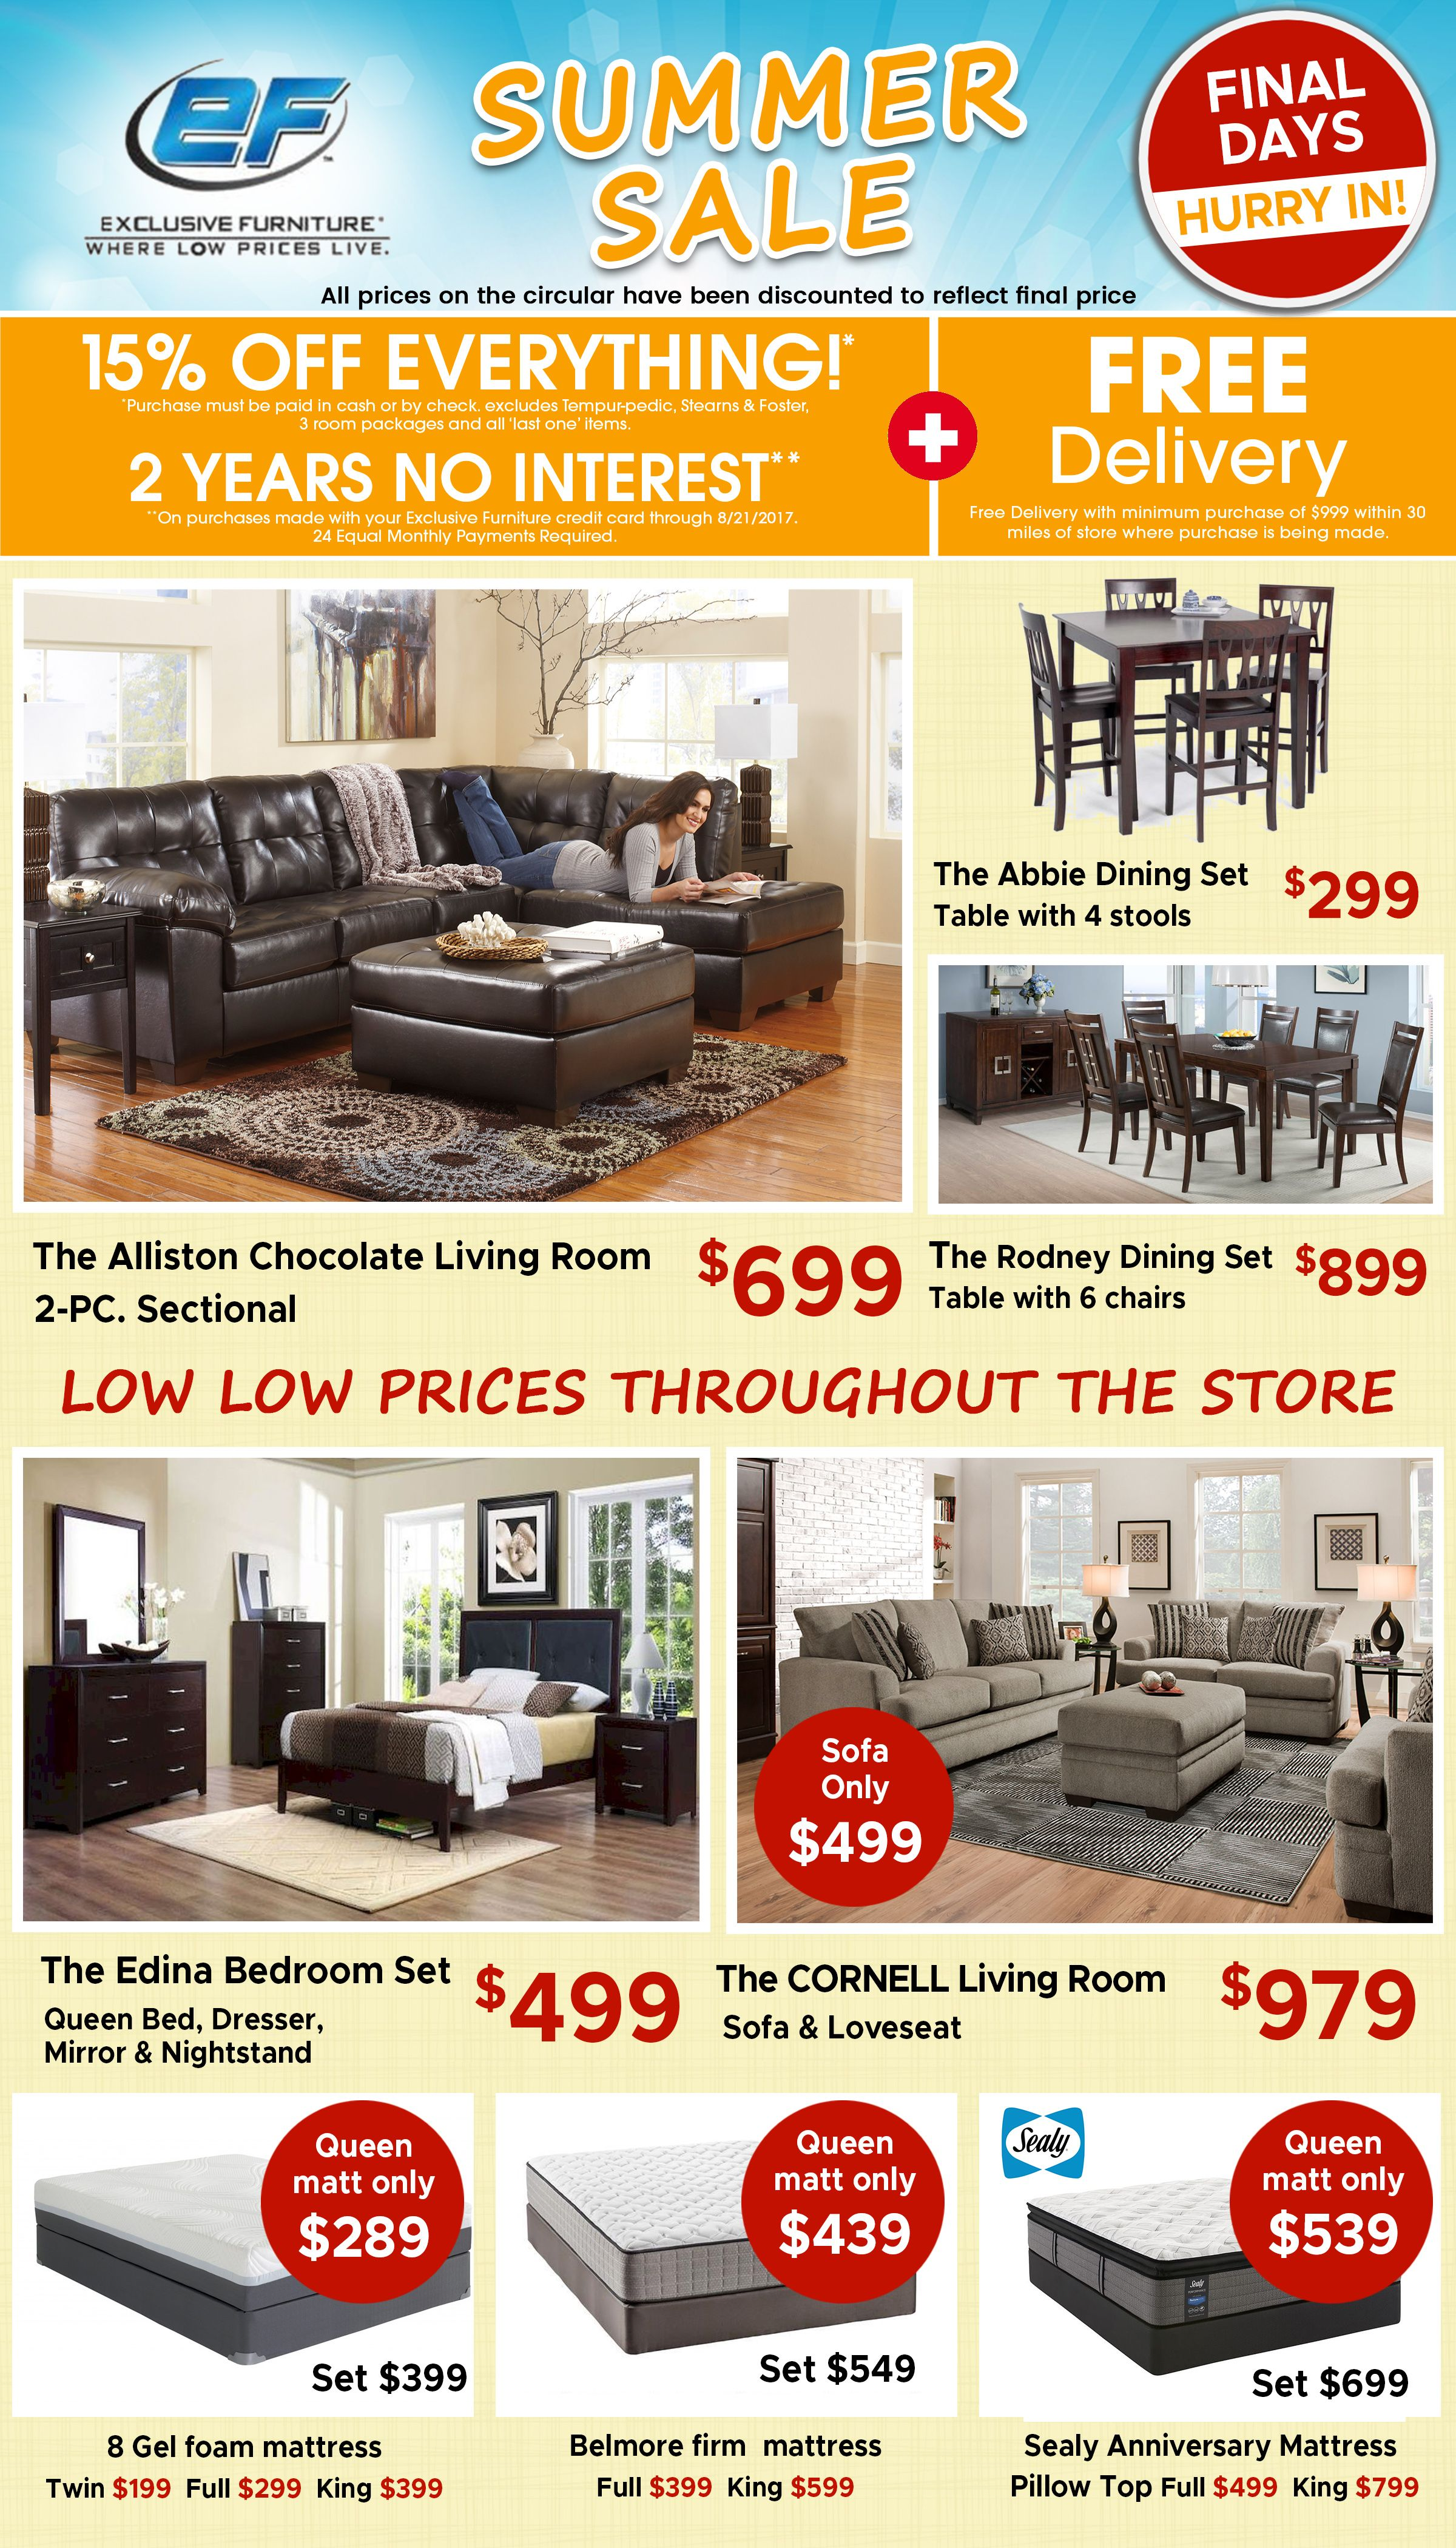 Hot Summer Sale 15 Off Everything 2 Years No Interest Free Delivery Exclusivefurniture Wherelow Exclusive Furniture Chocolate Living Rooms Houston Furniture